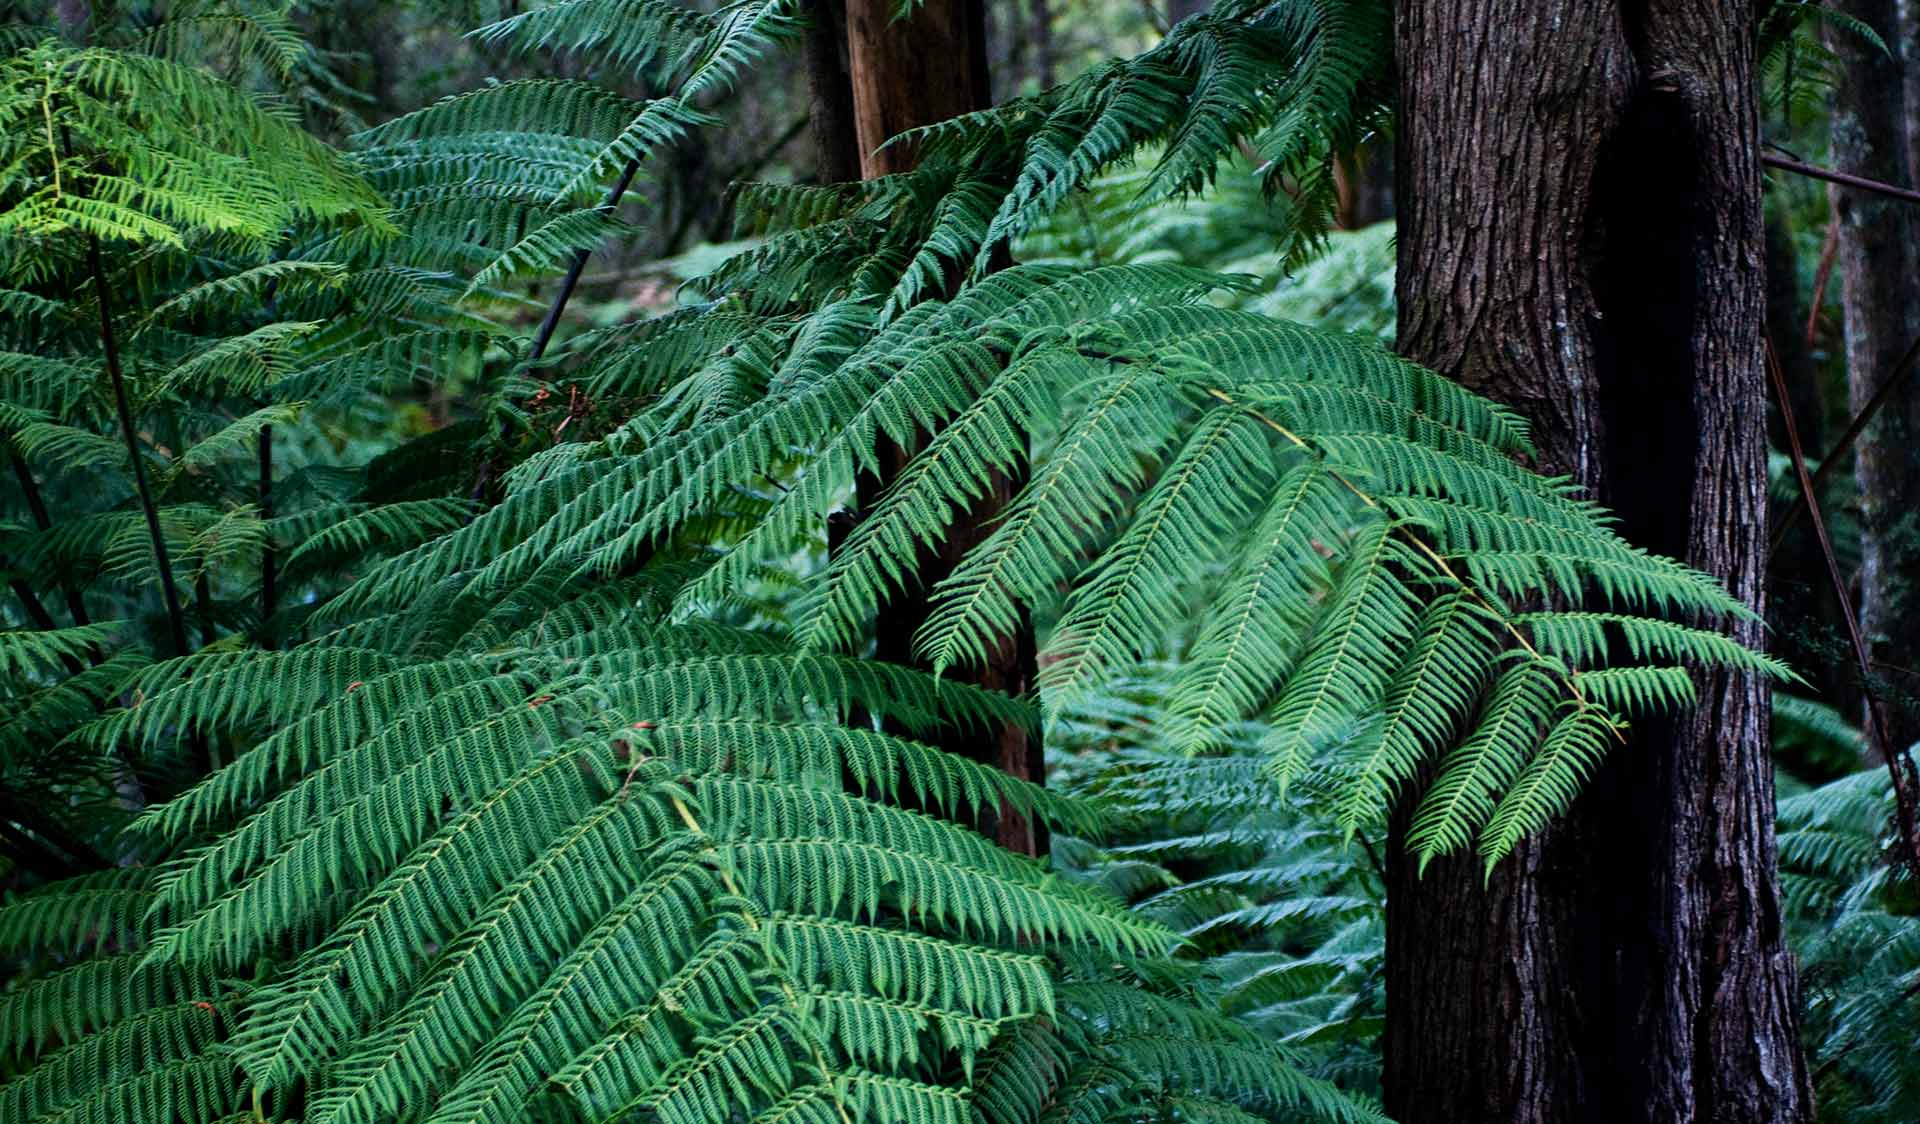 Ferns in the Yarra Ranges National Park.